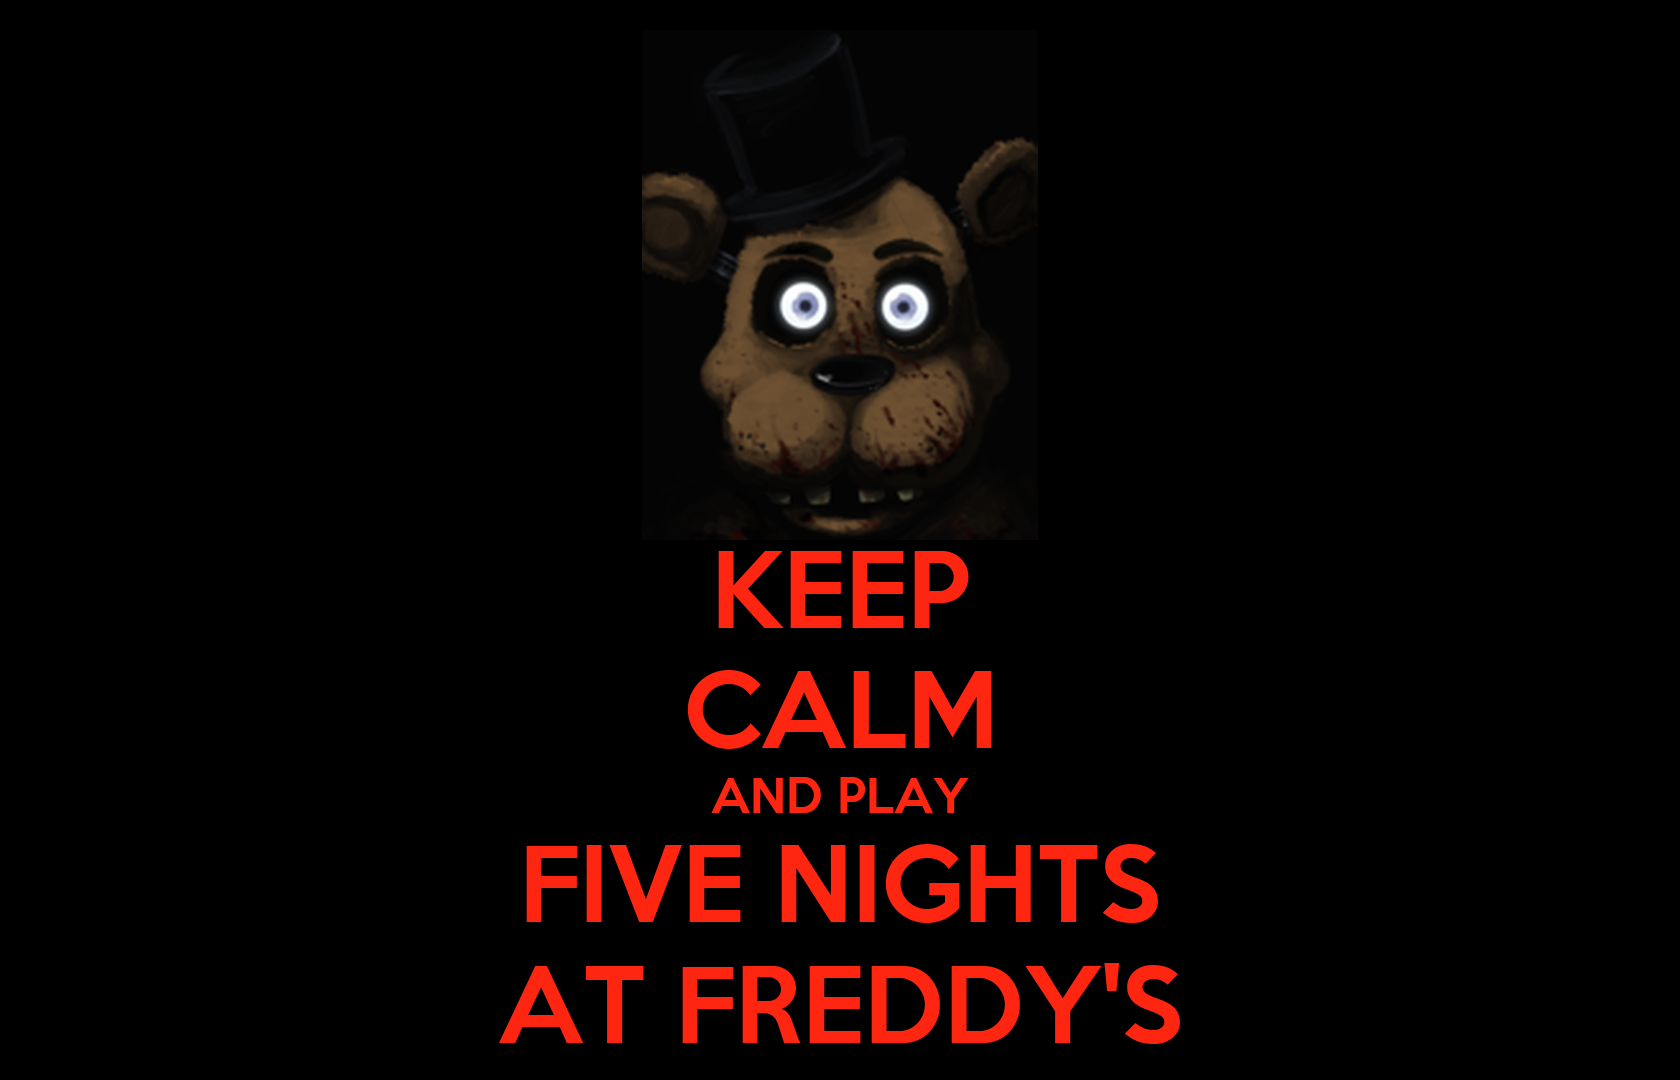 Freddys 2 nights at five play five nights at freddys 2 unblocked